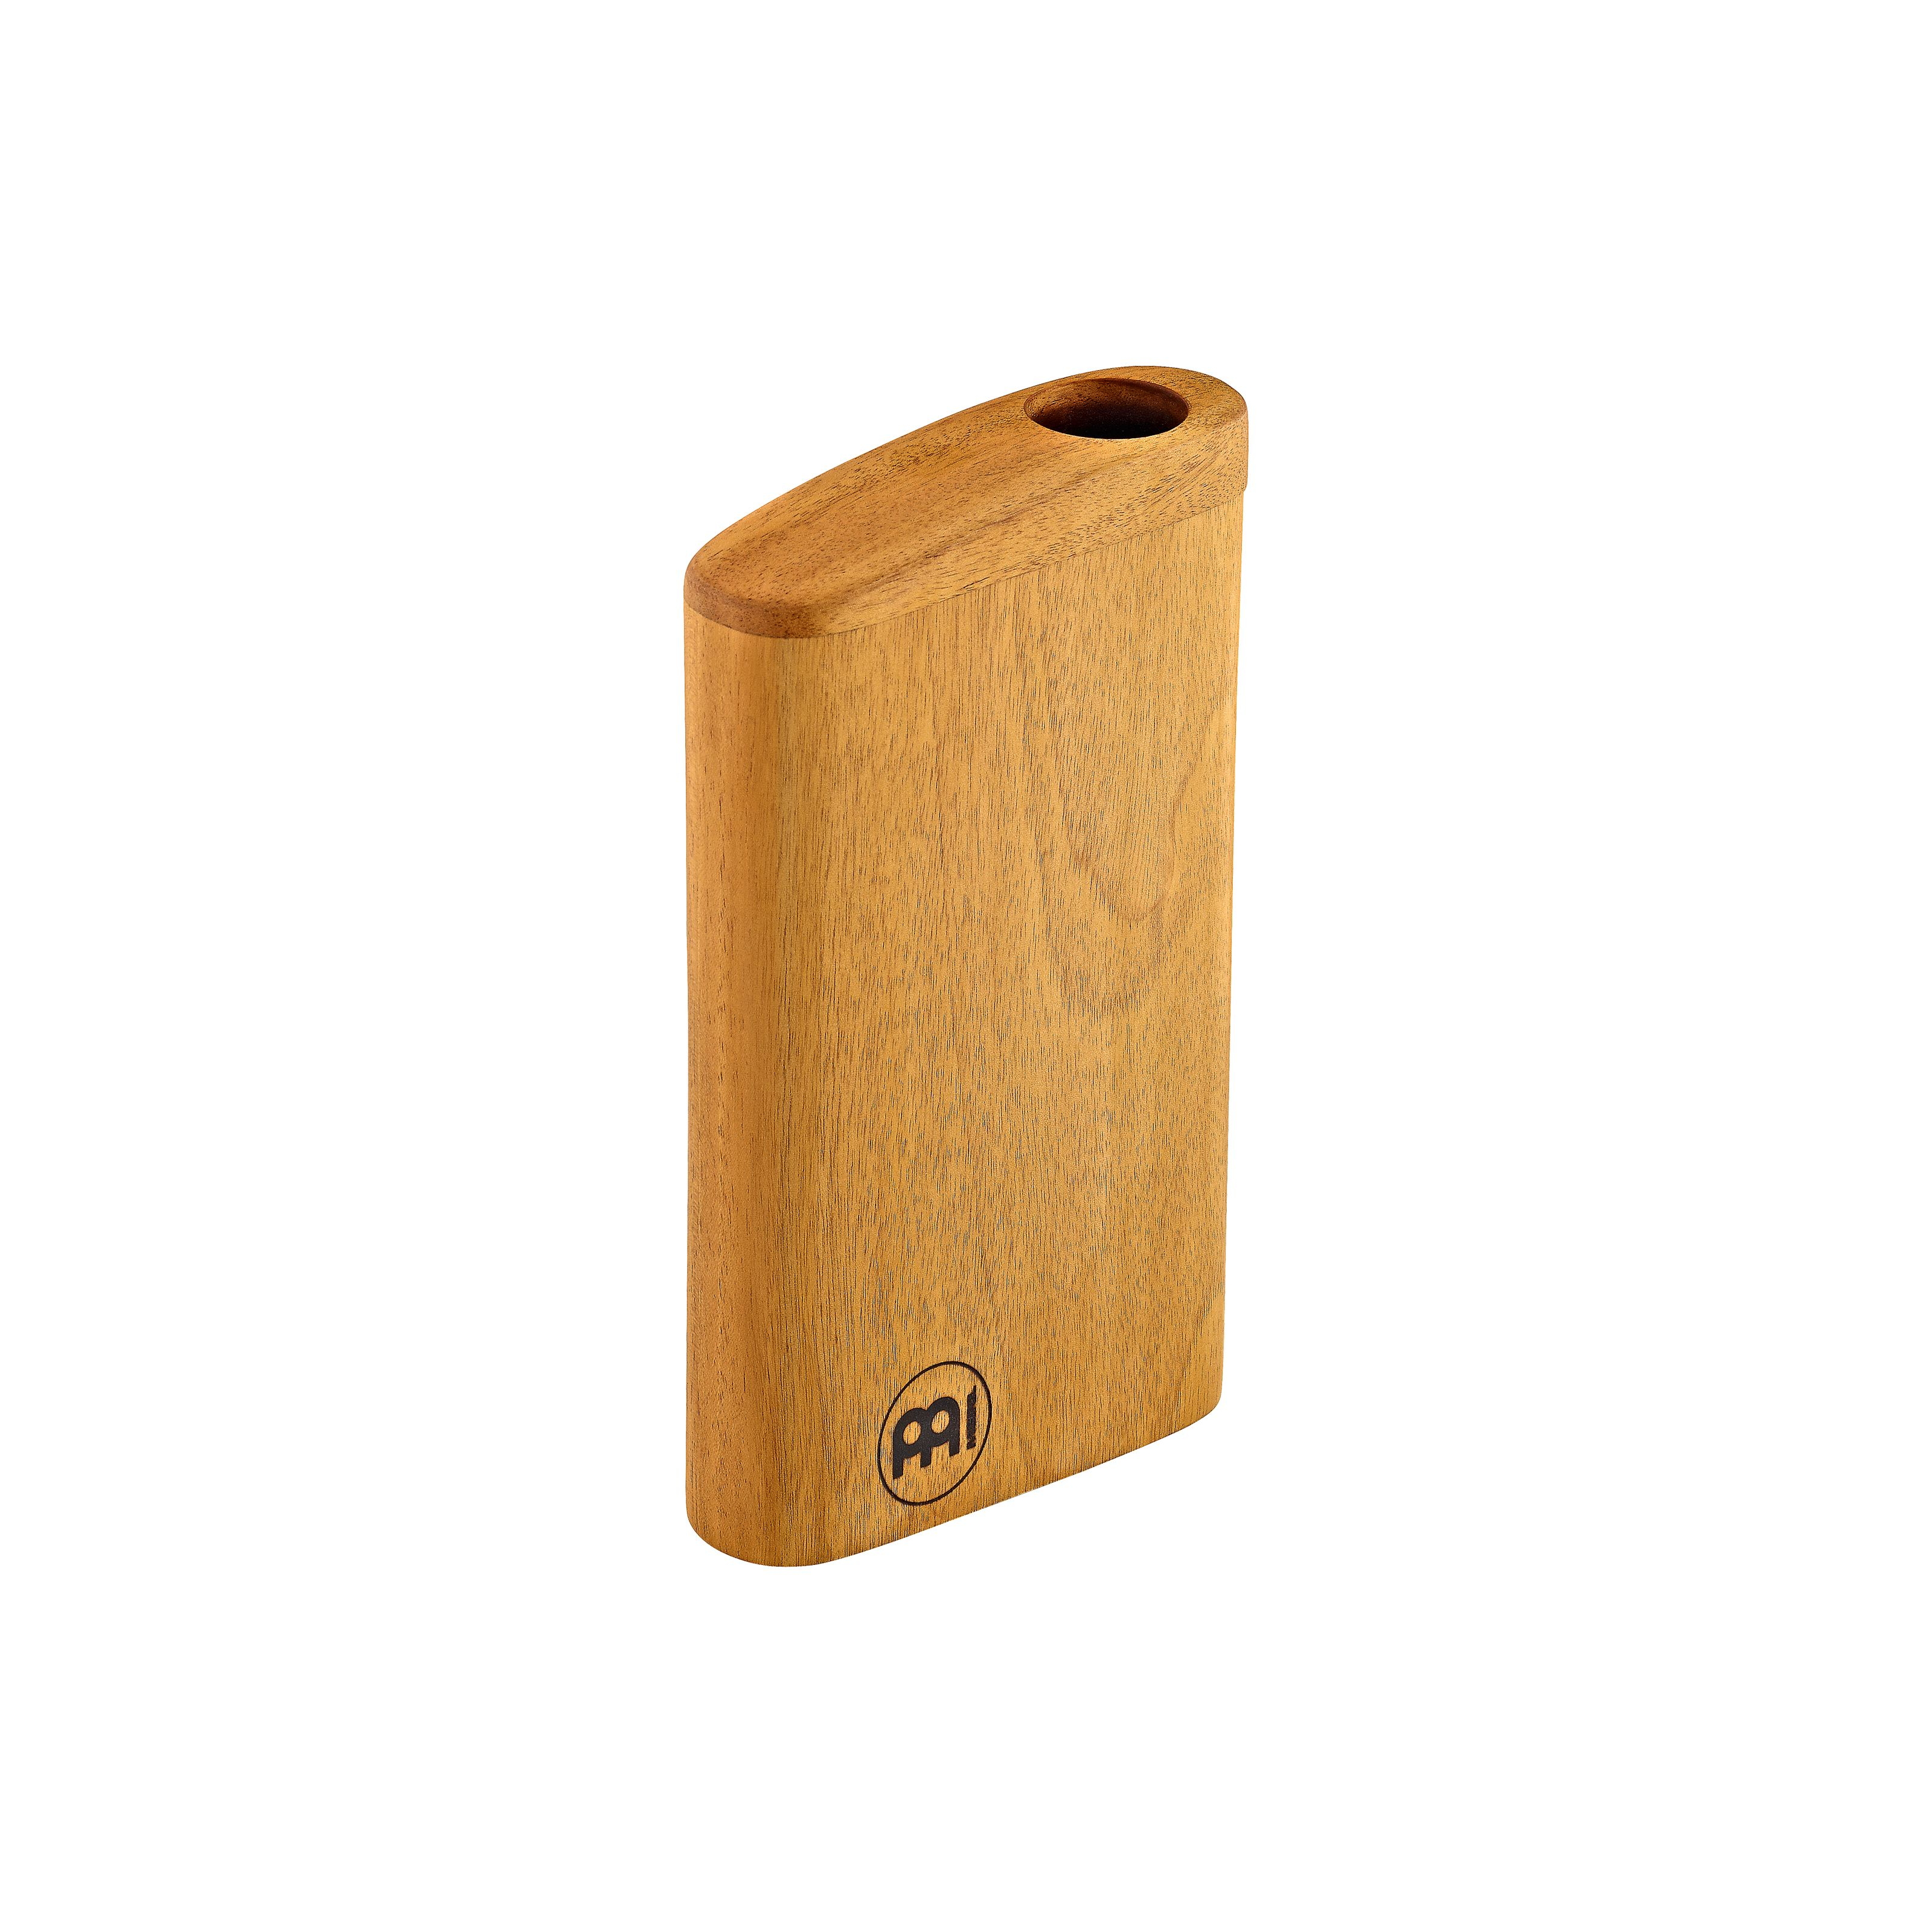 Meinl - Travel Didgeridoo DDG-BOX